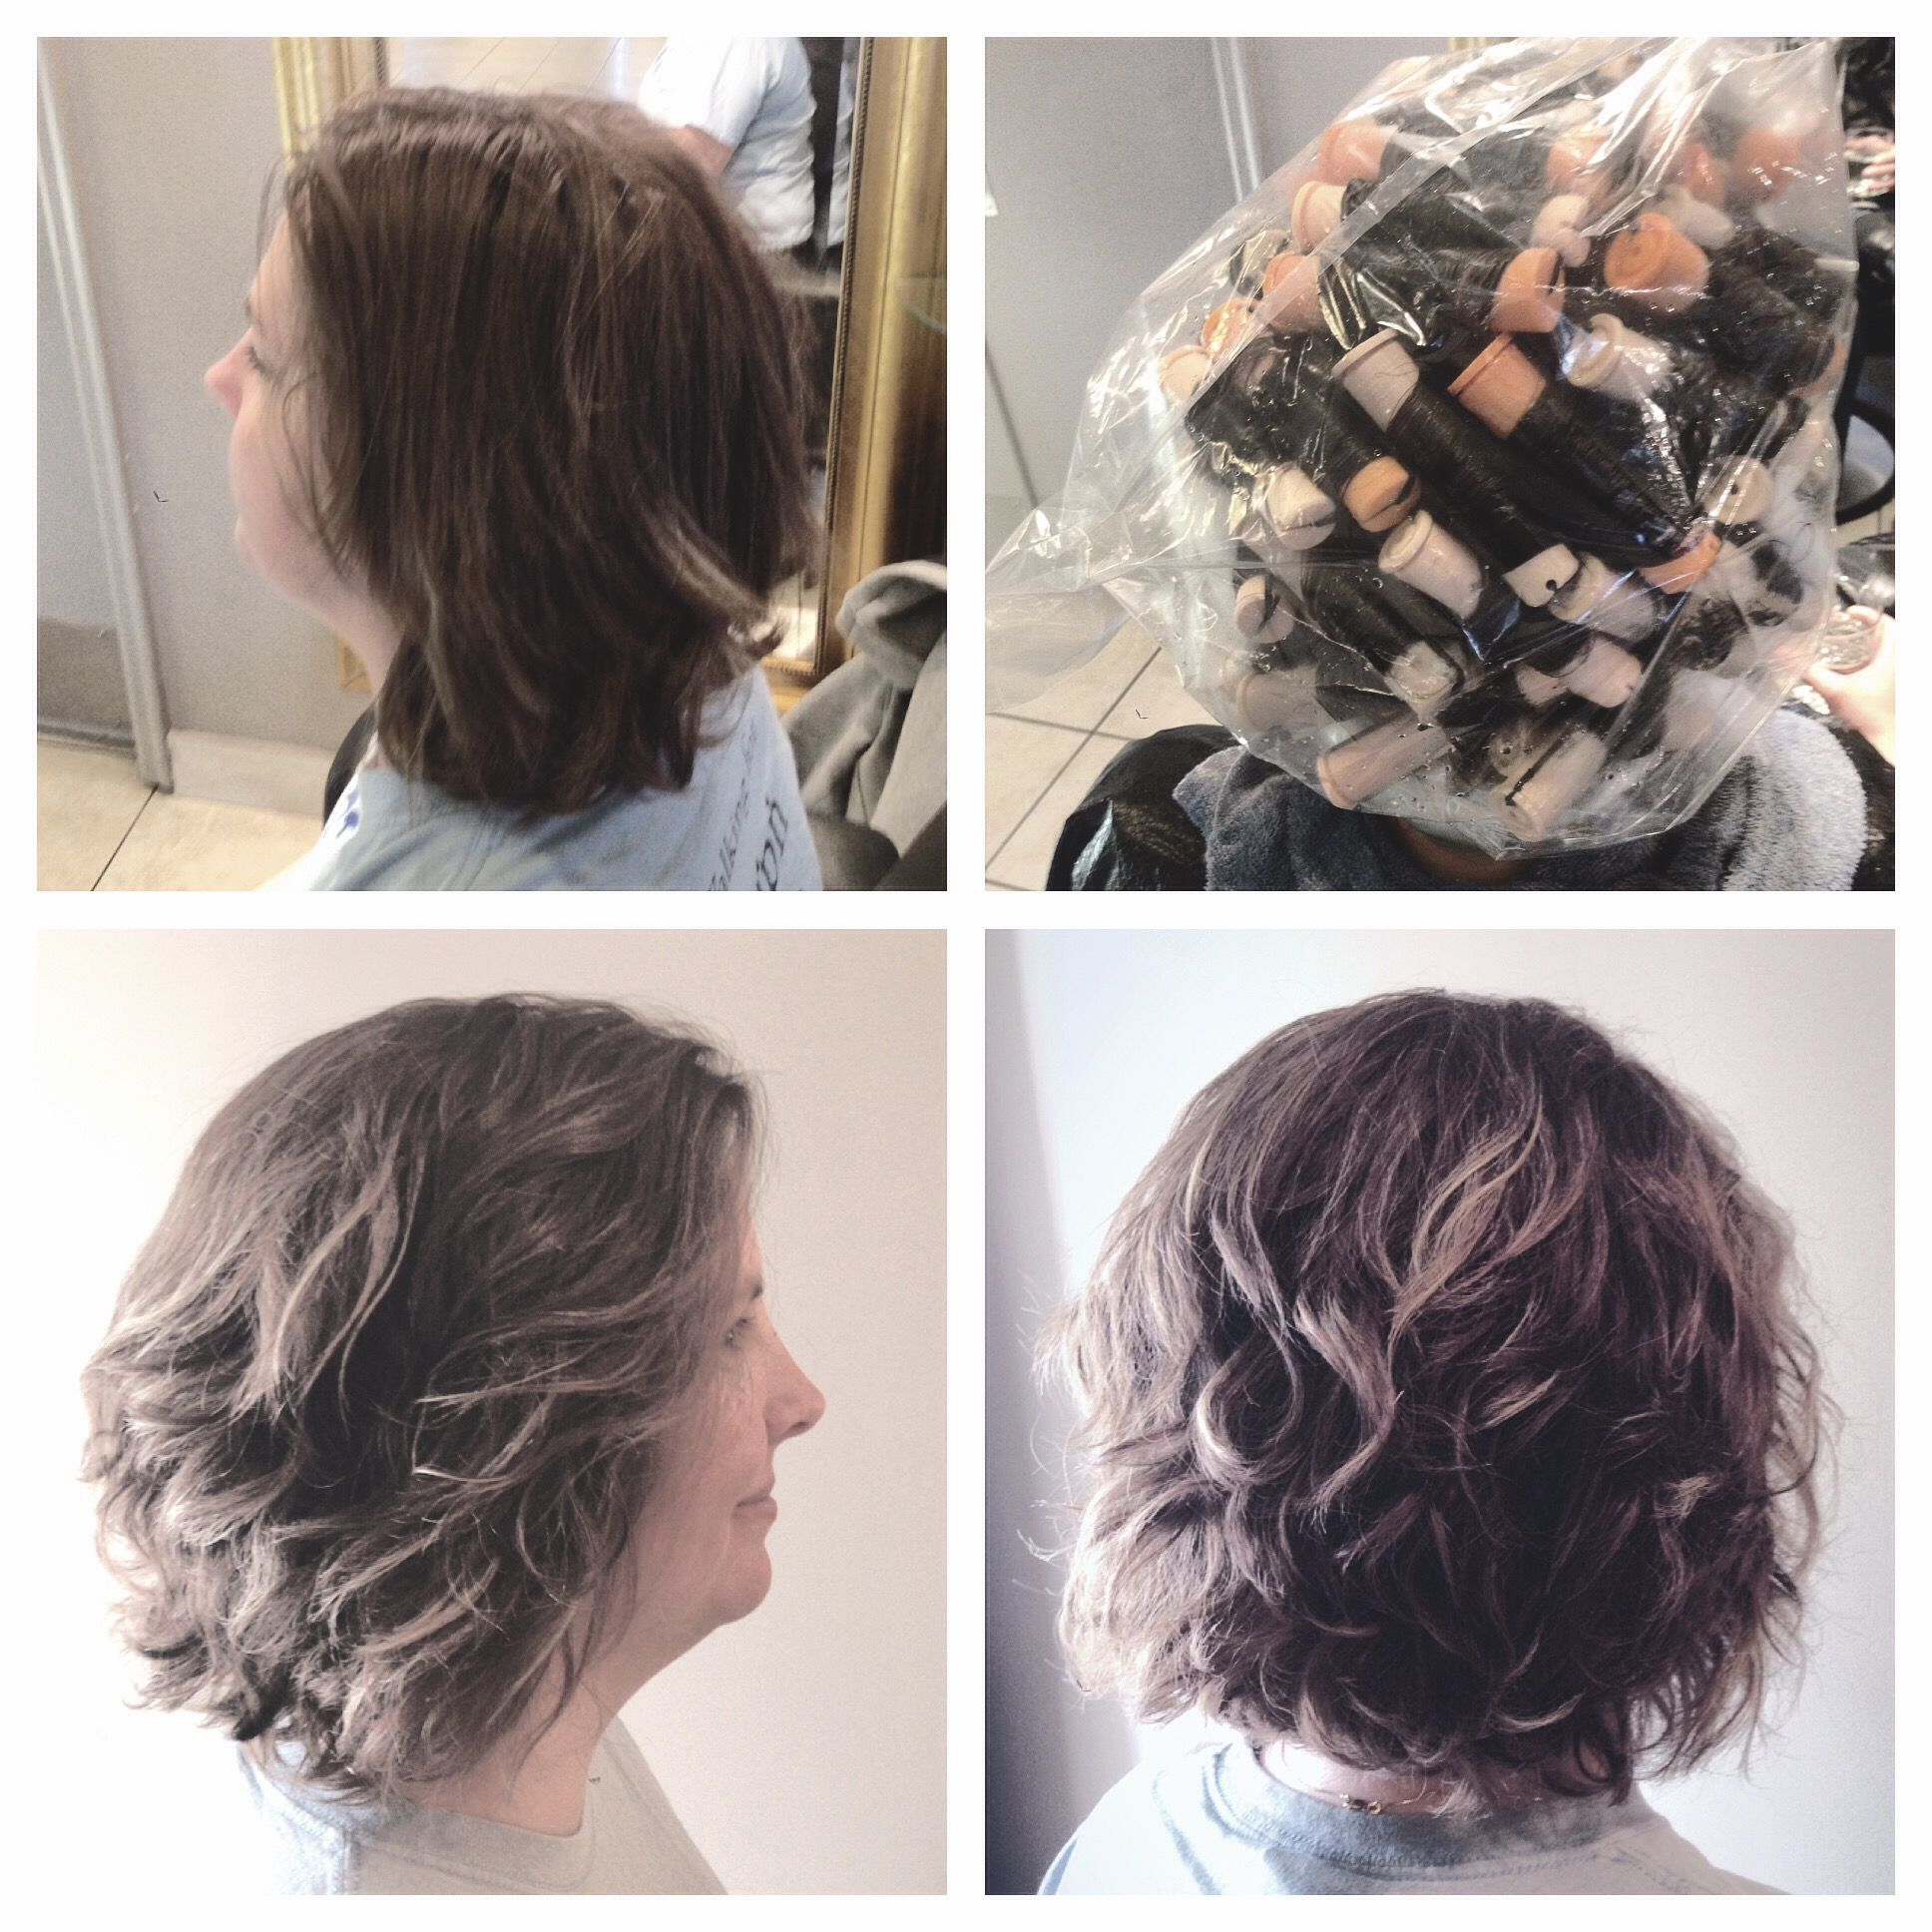 Cutting edge permed medium hairstyles image files feilong spiral perm on a bob body wave image source pinterest solutioingenieria Images